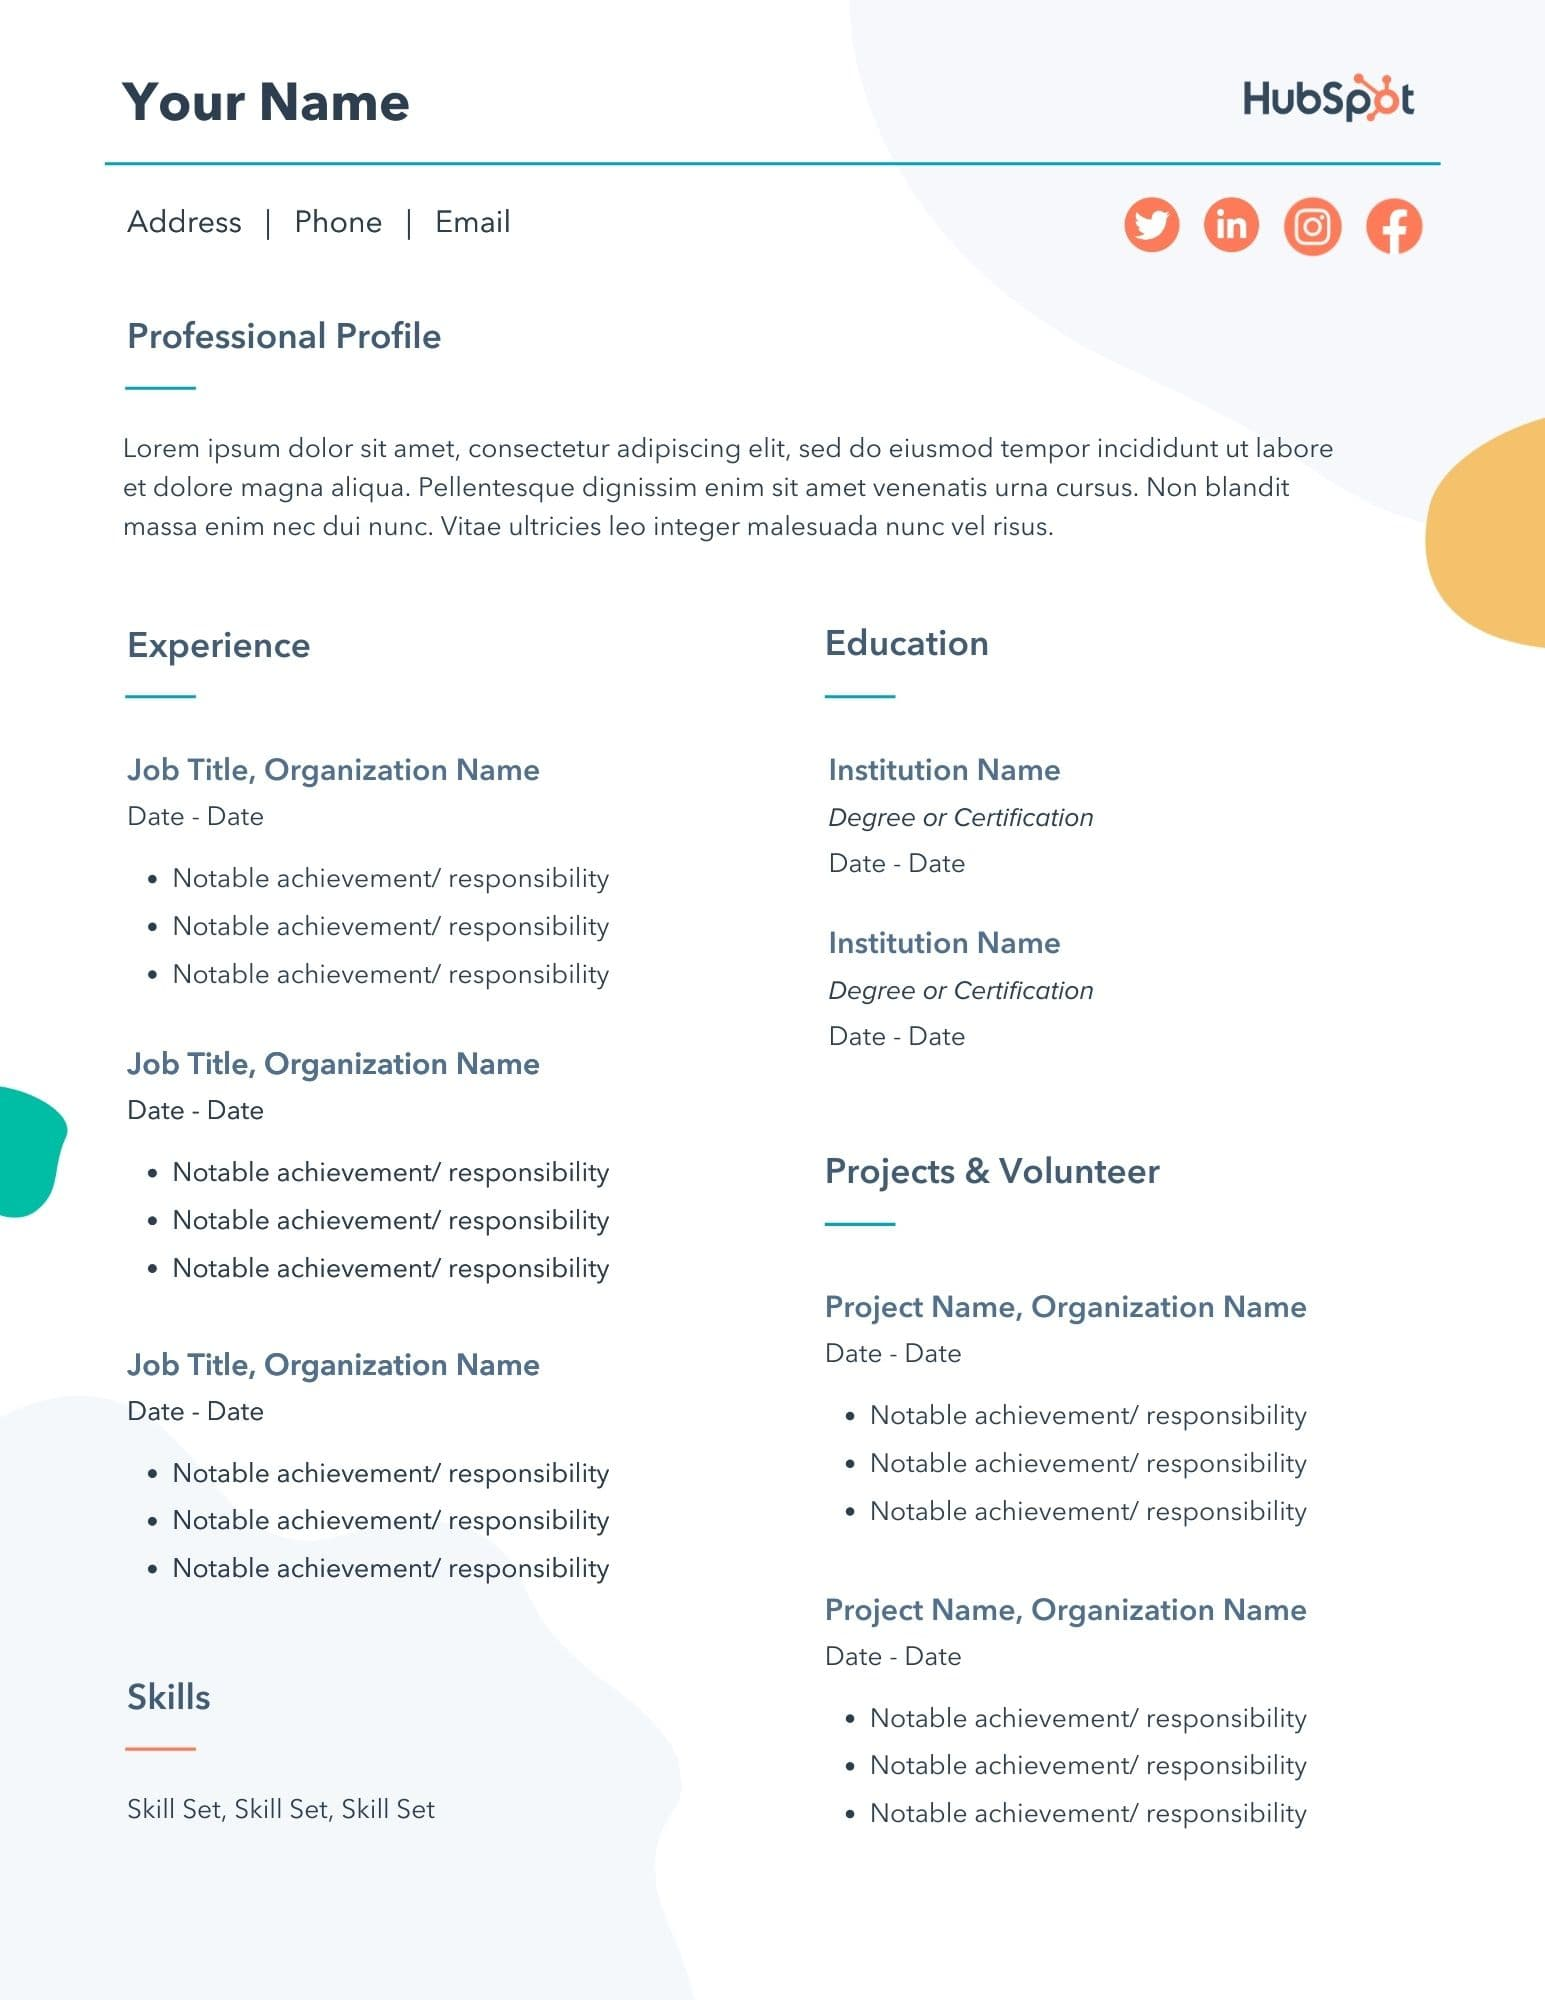 free resume templates for microsoft word to make your own personal experience template Resume Resume Personal Experience